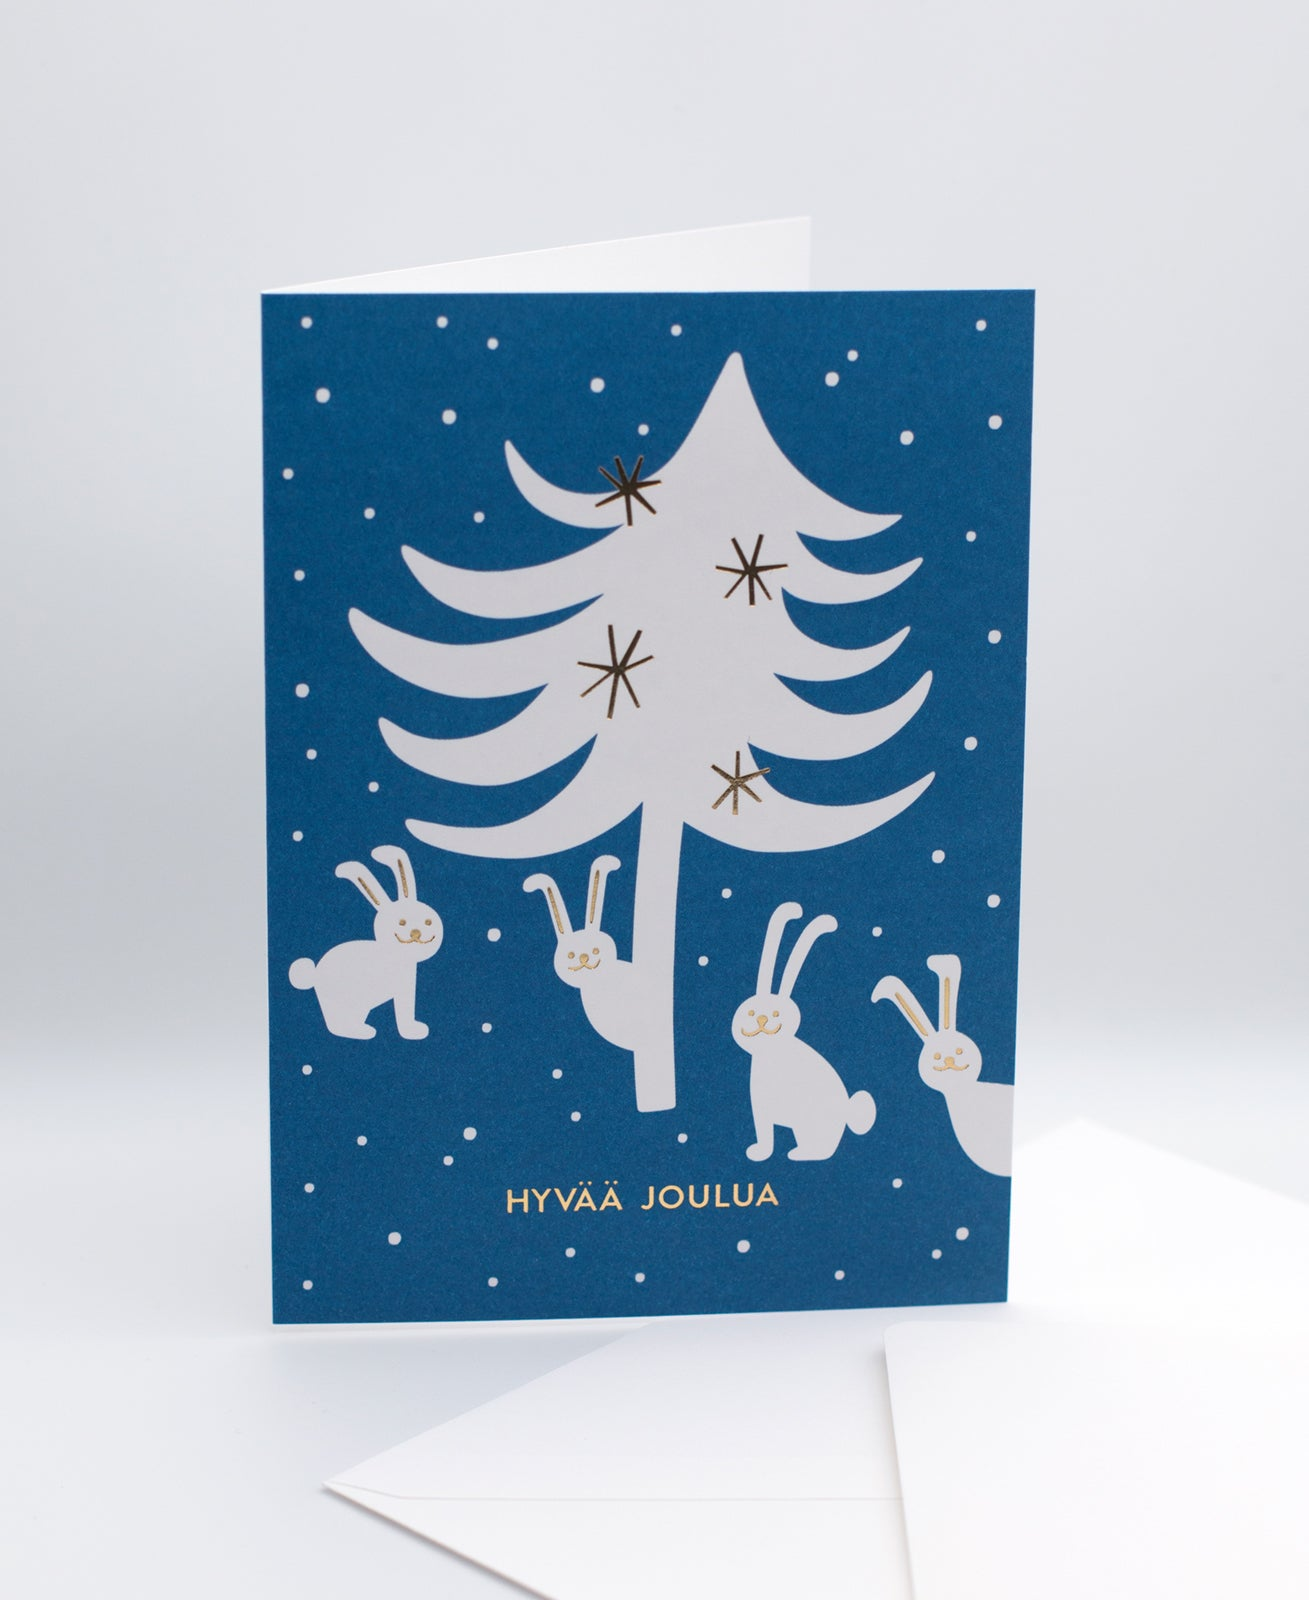 Joulujänikset greeting card and white envelope